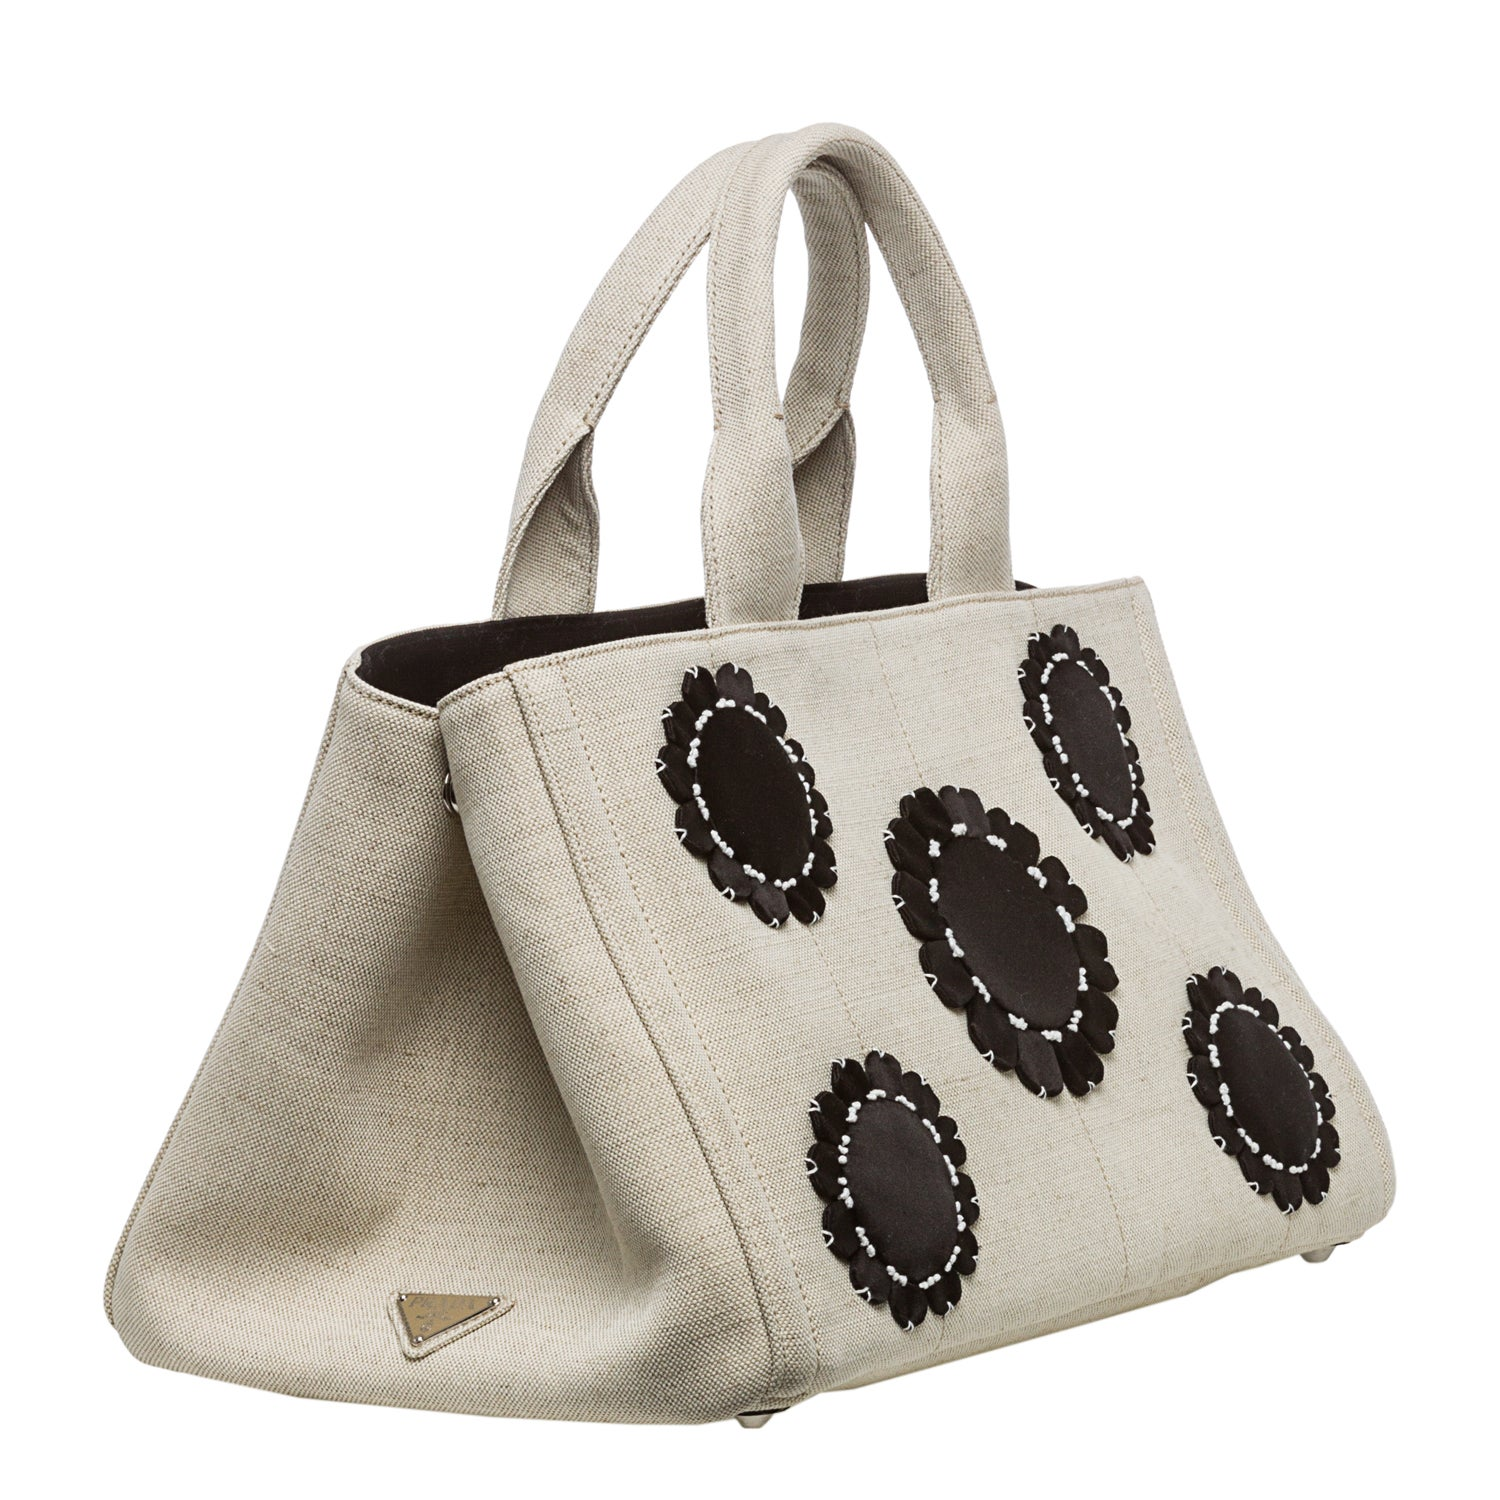 f47891a640ee amazon prada saffiano gardeners tote bag 49b88 53263  closeout shop natural  black prada misollino floral gardners tote free shipping today overstock  8038425 ...